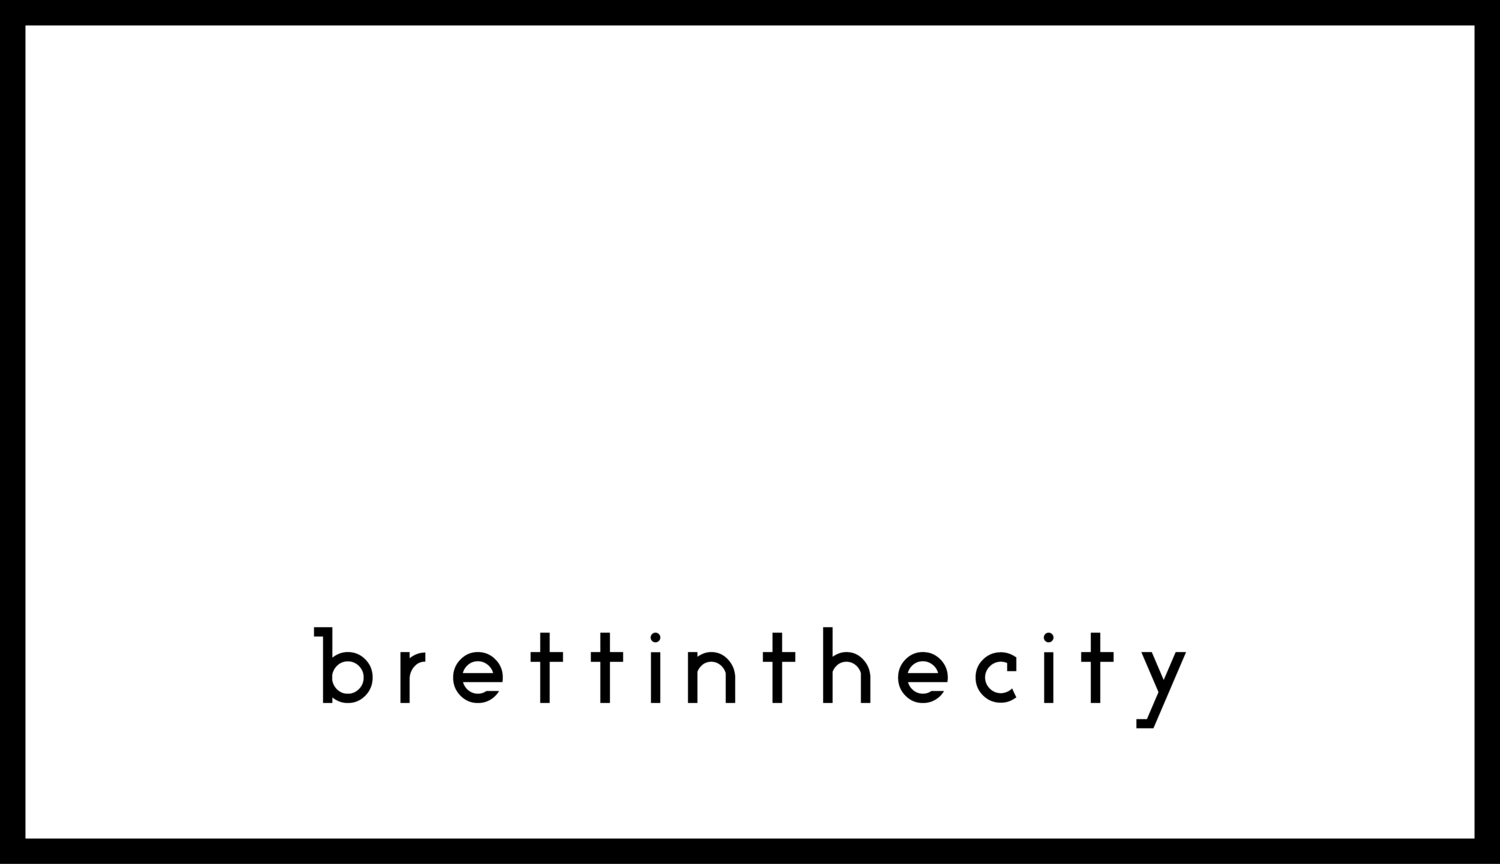 brettinthecity - Video and film production in Sheffield